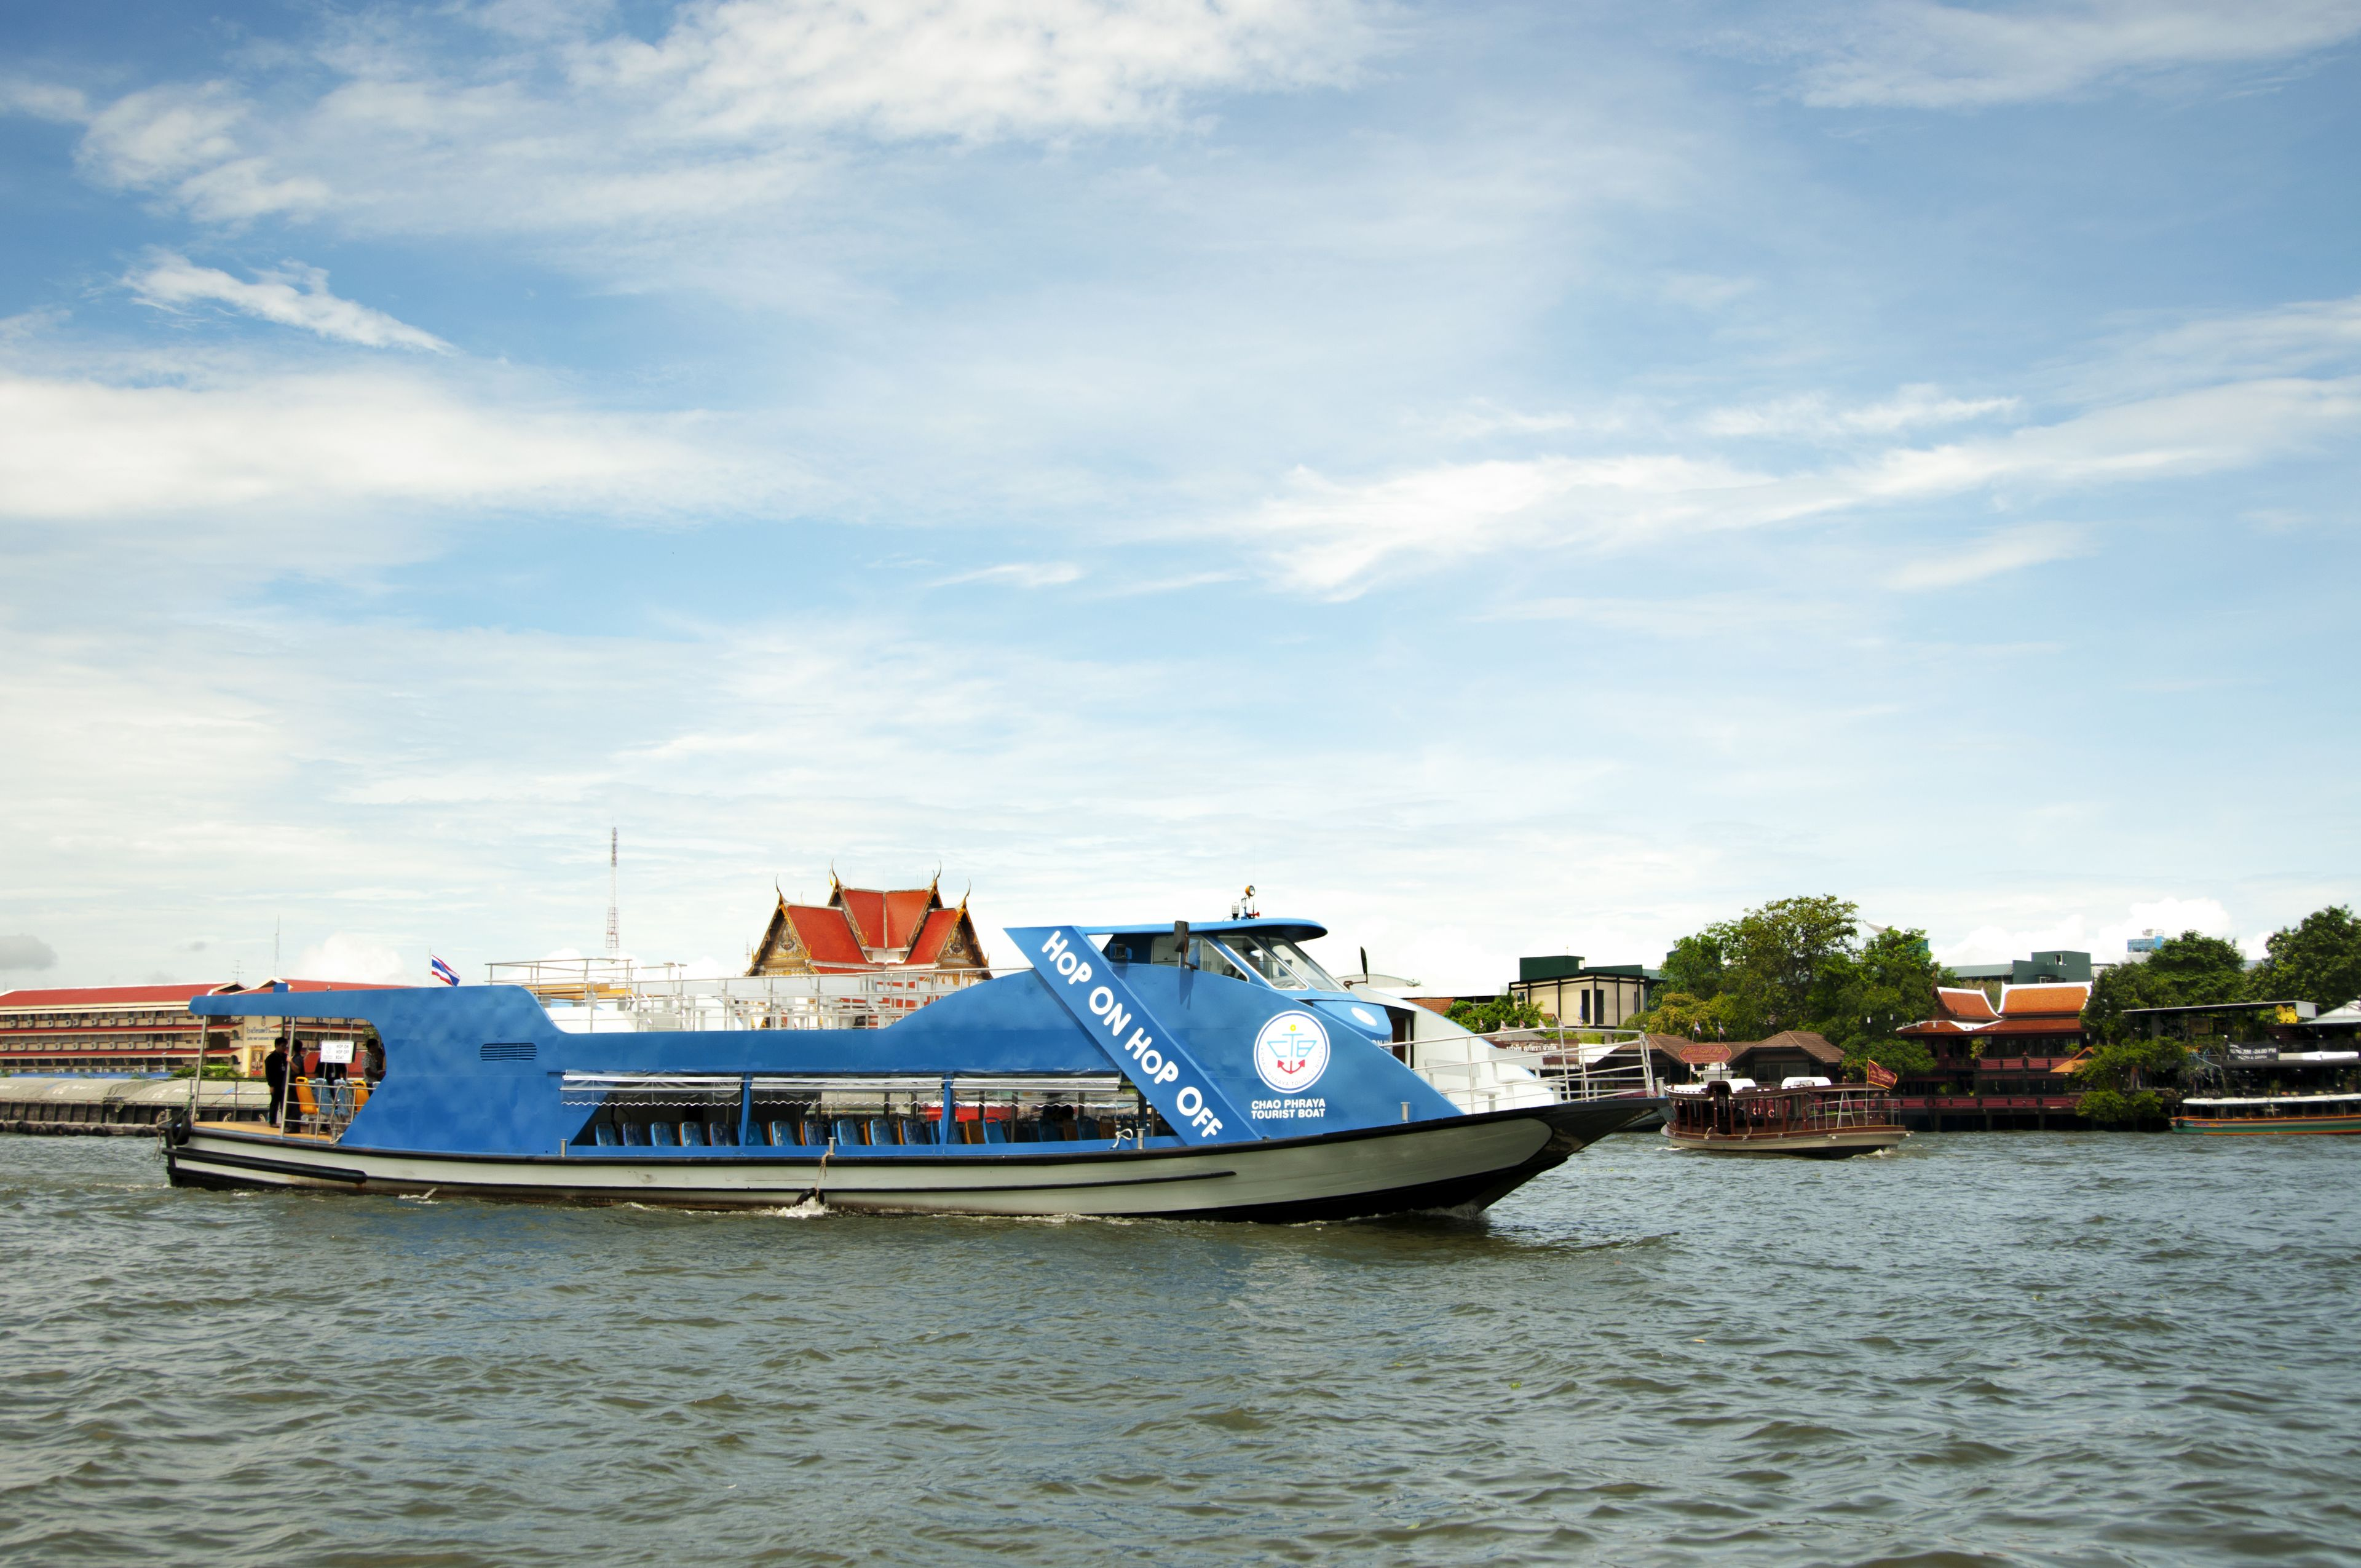 One-day Pass Unlimited Hop-on Hop-off in Chao Phraya Bangkok